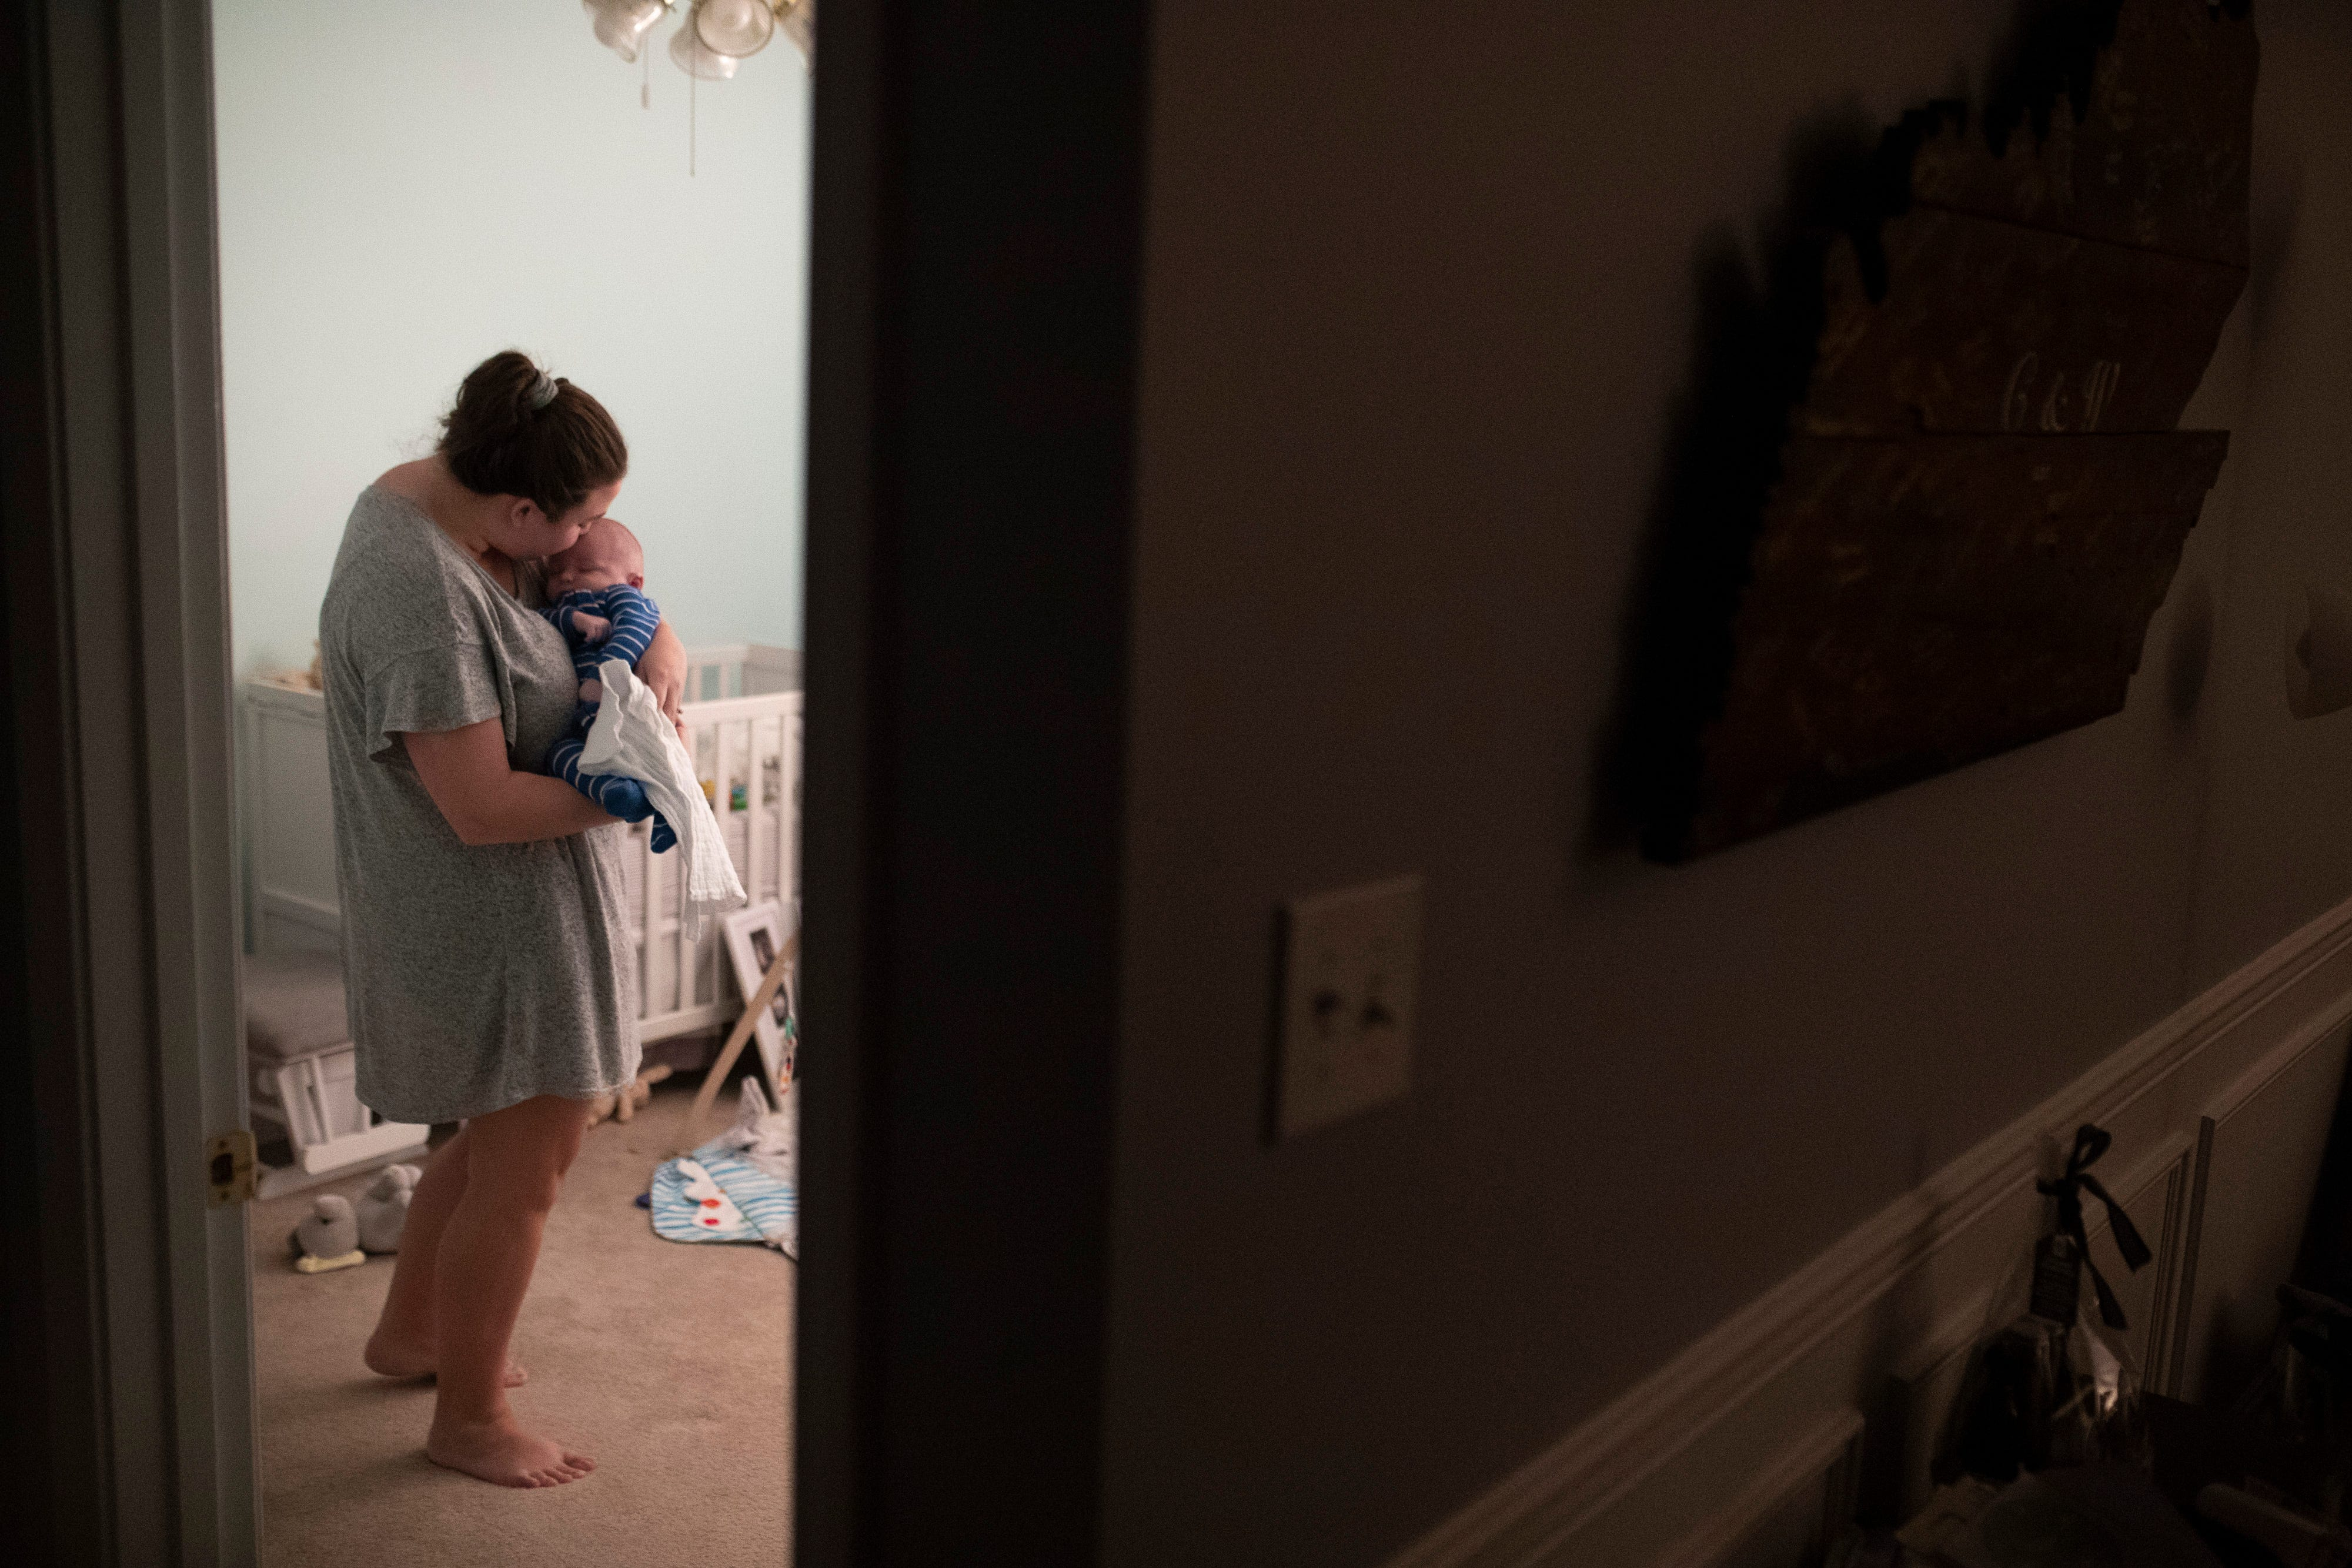 """2:34 AM  Christina Rose kisses her newborn Palmer, born Nov. 16, after waking up past midnight to calm his cries with some milk and rocking before putting the young boy back to bed on Jan. 24, 2020. """"He eats every three to four hours so that usually gets us up in the middle of the night,"""" Rose said. """"Being a new mom has been nothing that I expected. It has been the most challenging and rewarding thing at the same time."""" Jan. 24, 2020"""